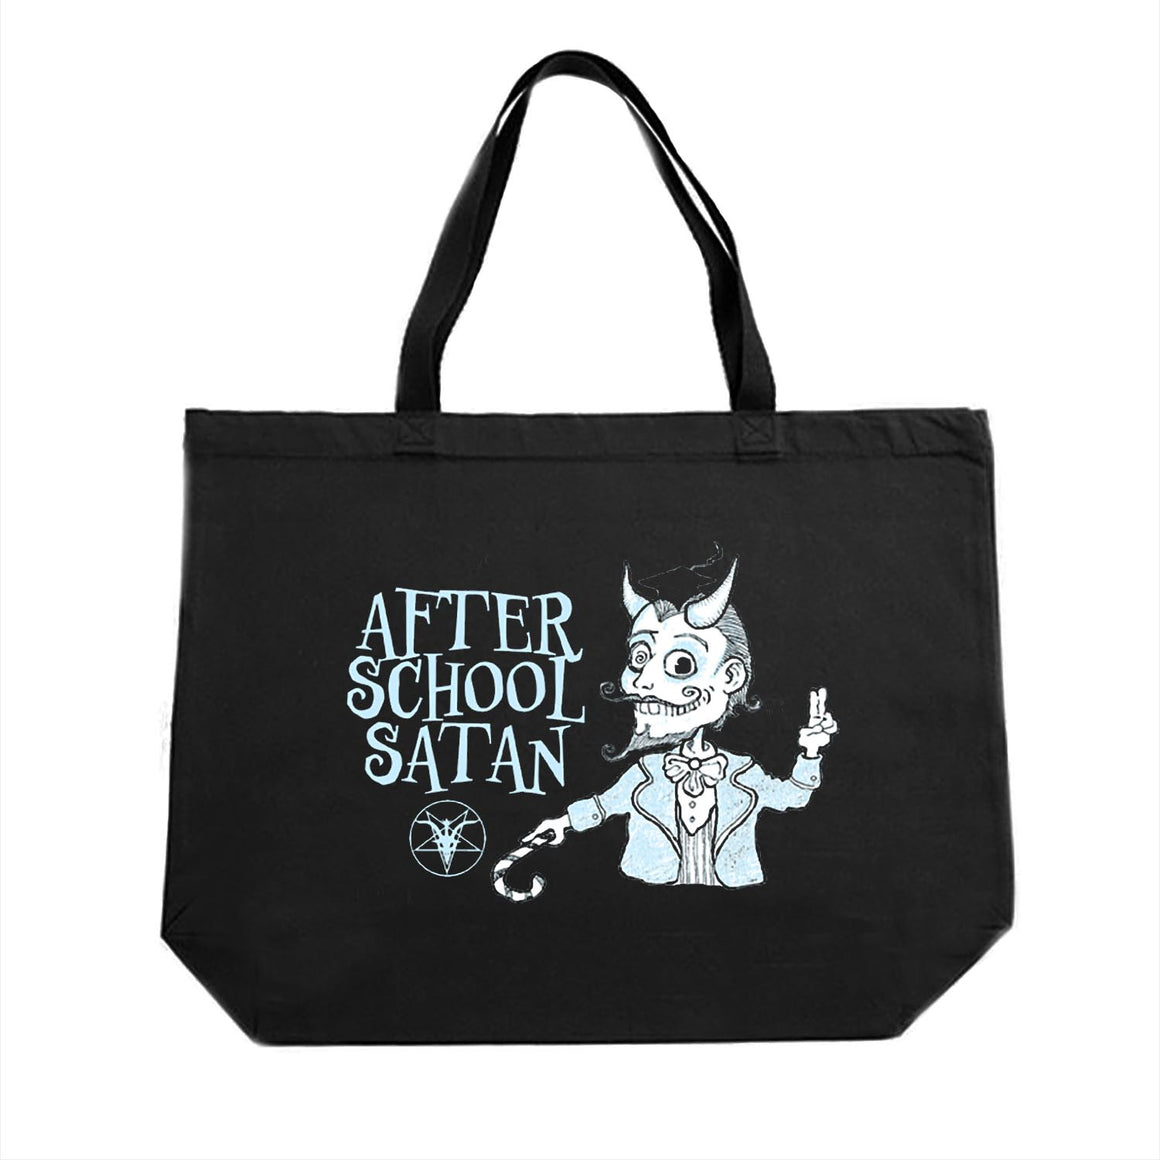 After School Satan Large Tote Bag Designed by Lucien Greaves